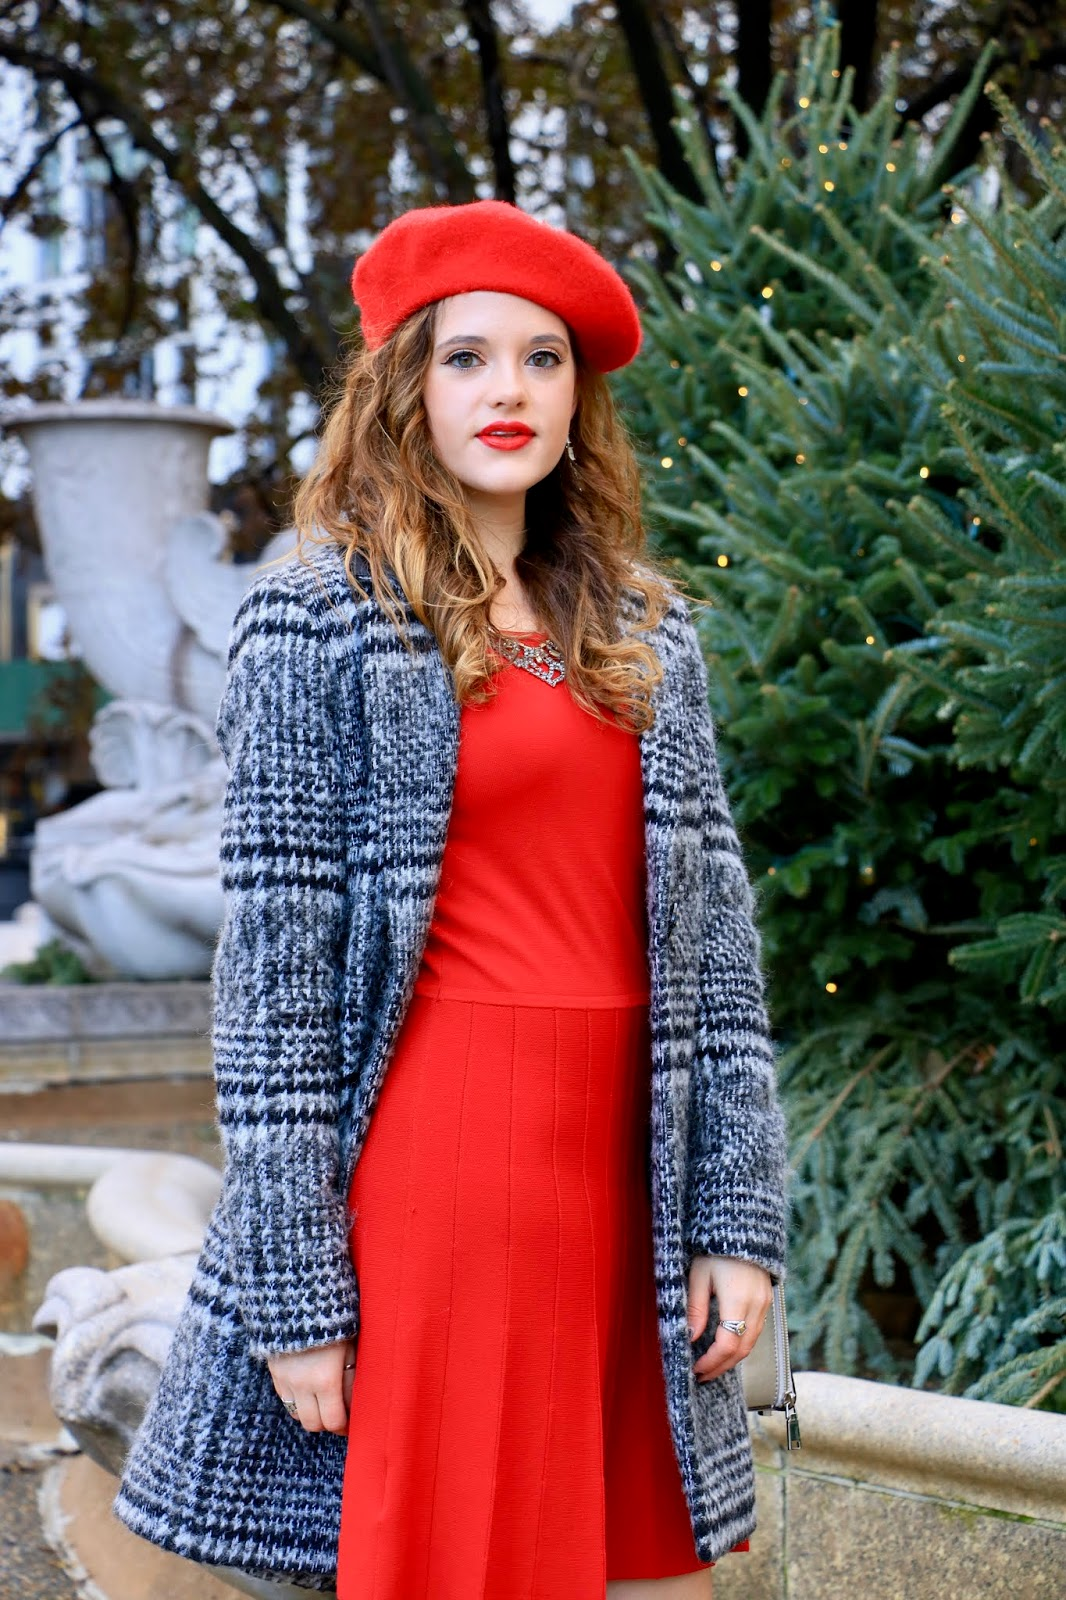 Nyc fashion blogger Kathleen Harper wearing a red holiday dress